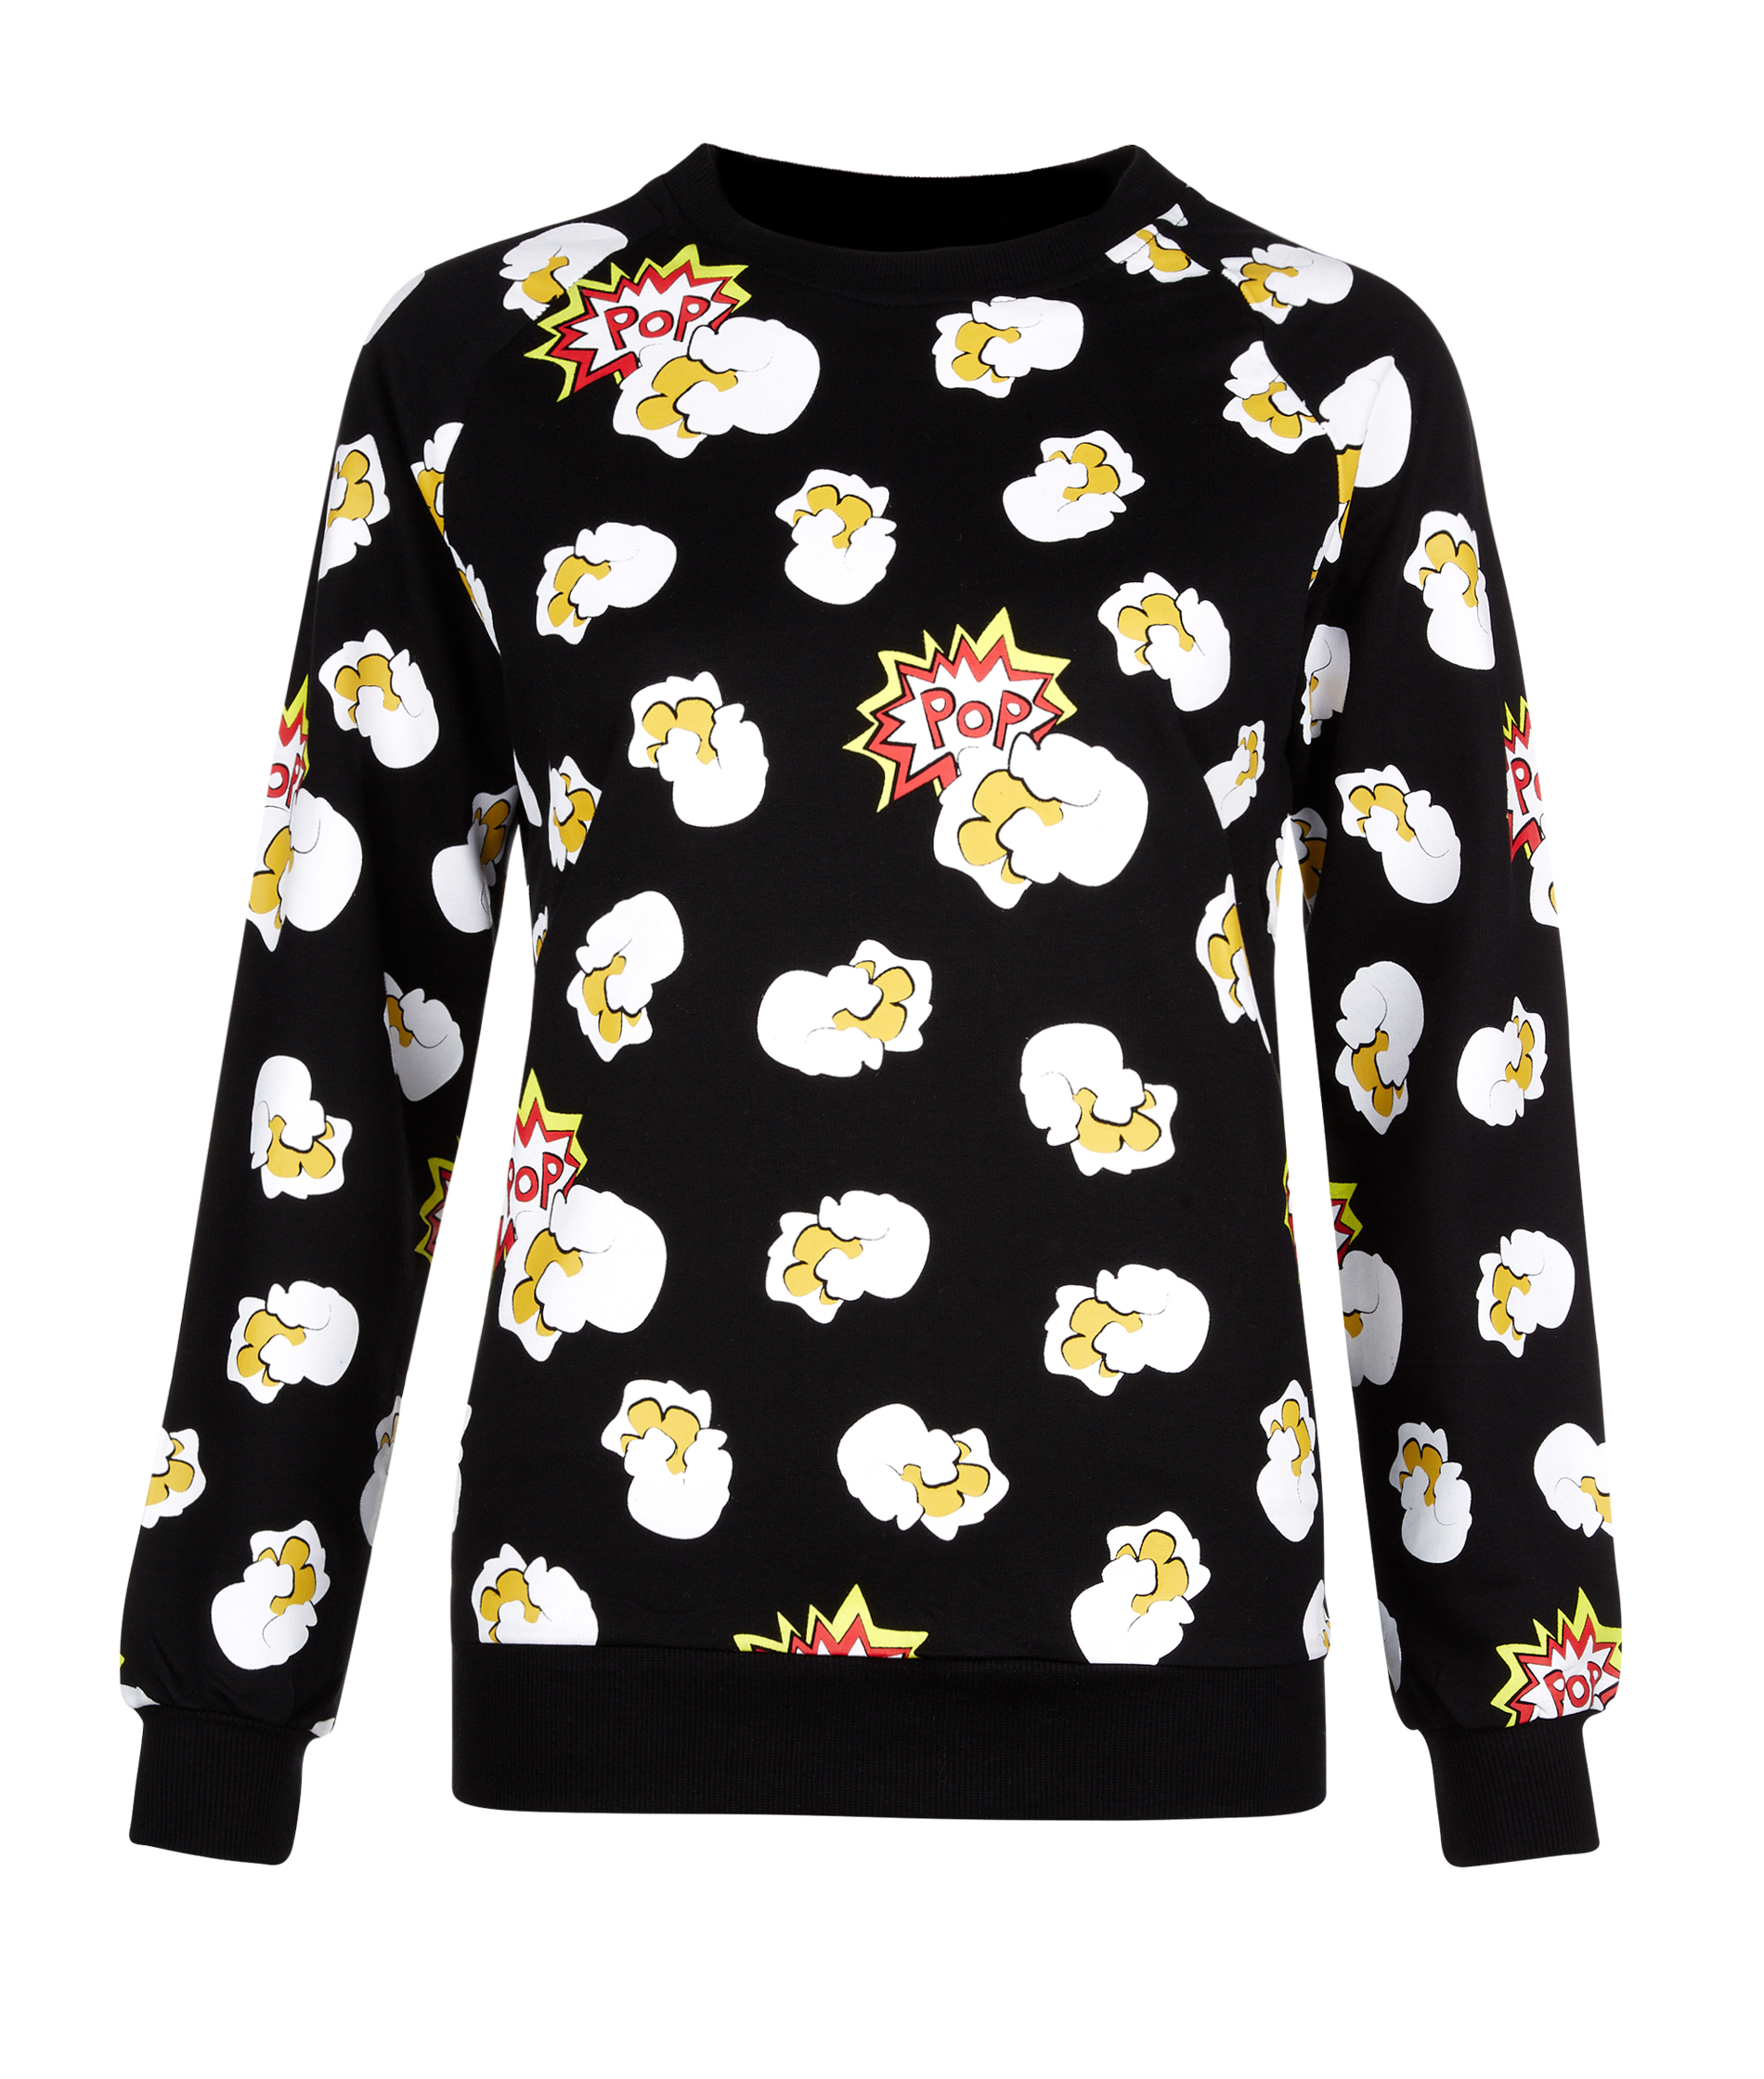 17251_World_goes_pop-popcorn_sweatshirt_rodnik_band_FR